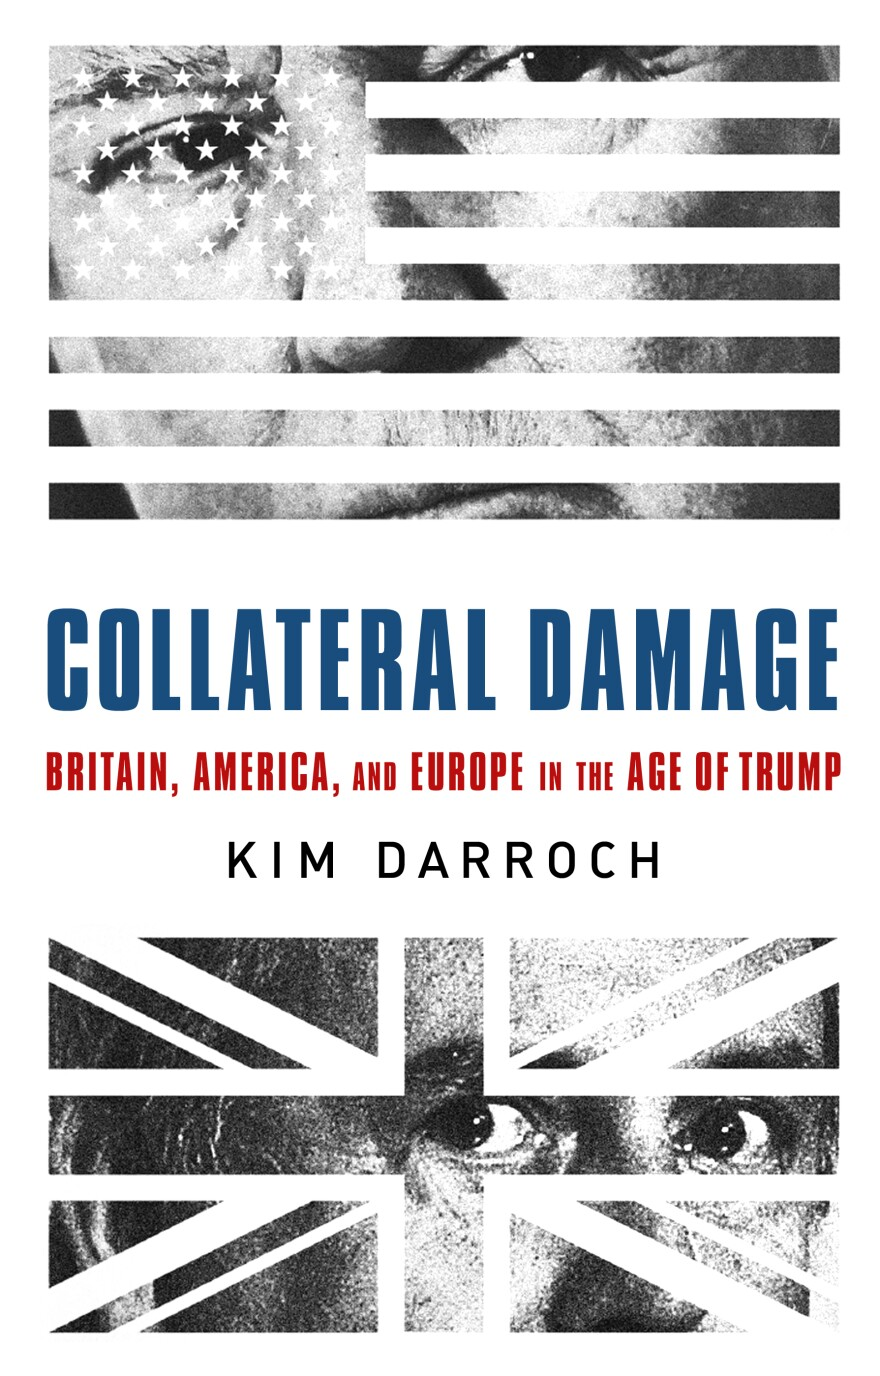 <em>Collateral Damage: Britain, America, and Europe in the Age of Trump</em>, by Kim Darroch